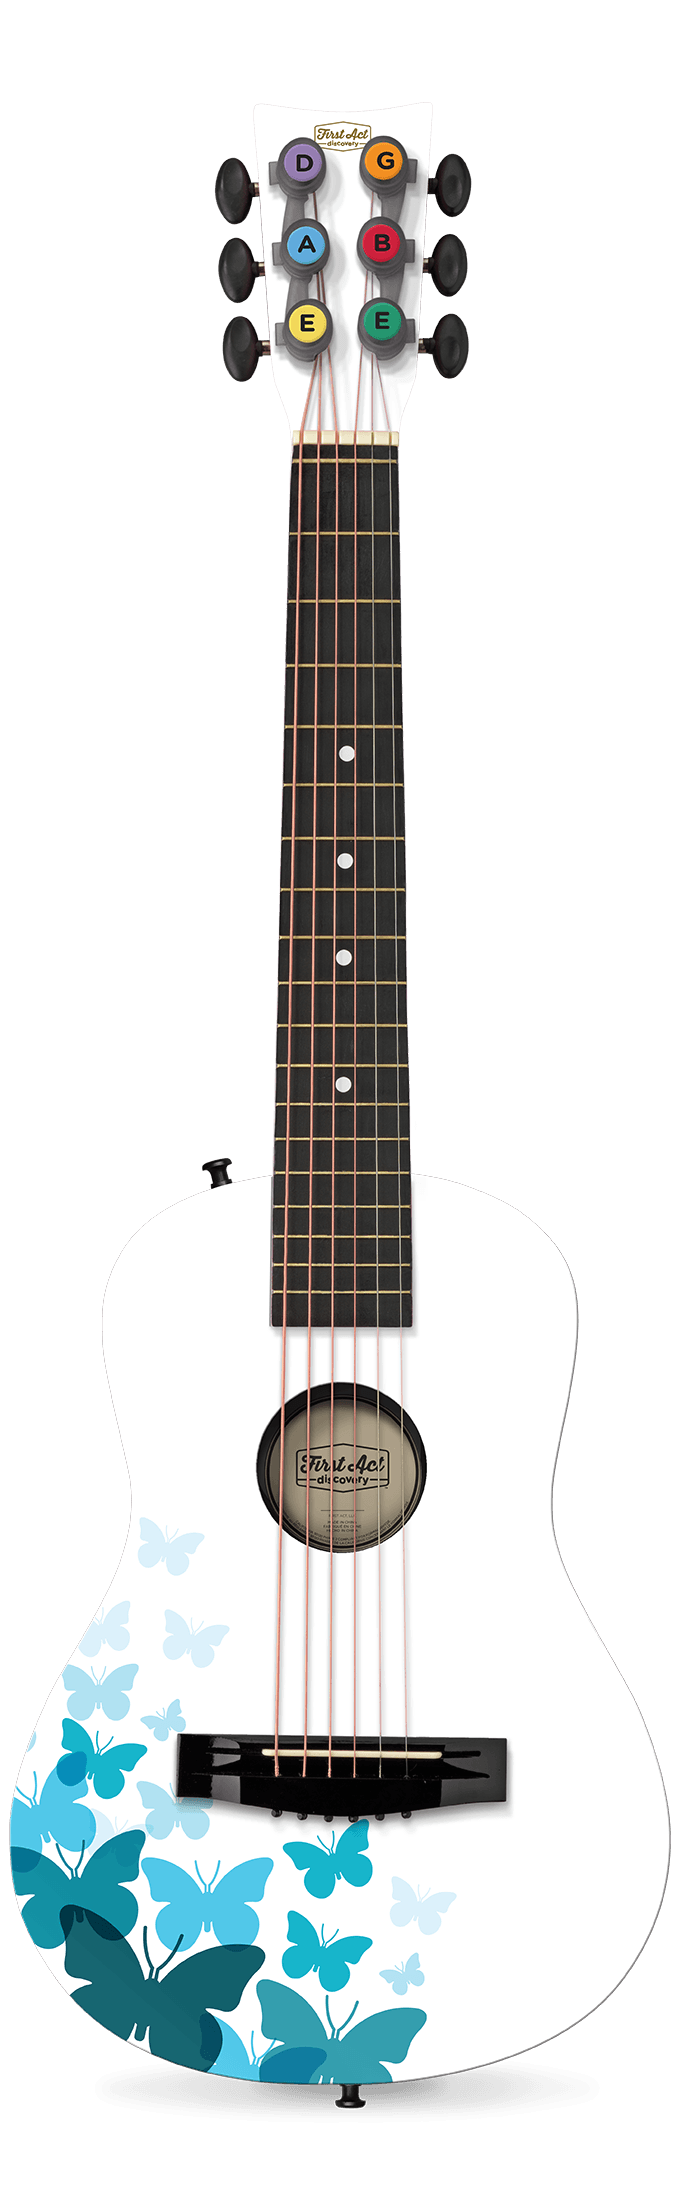 "White Butterfly 30"" Acoustic Guitar 